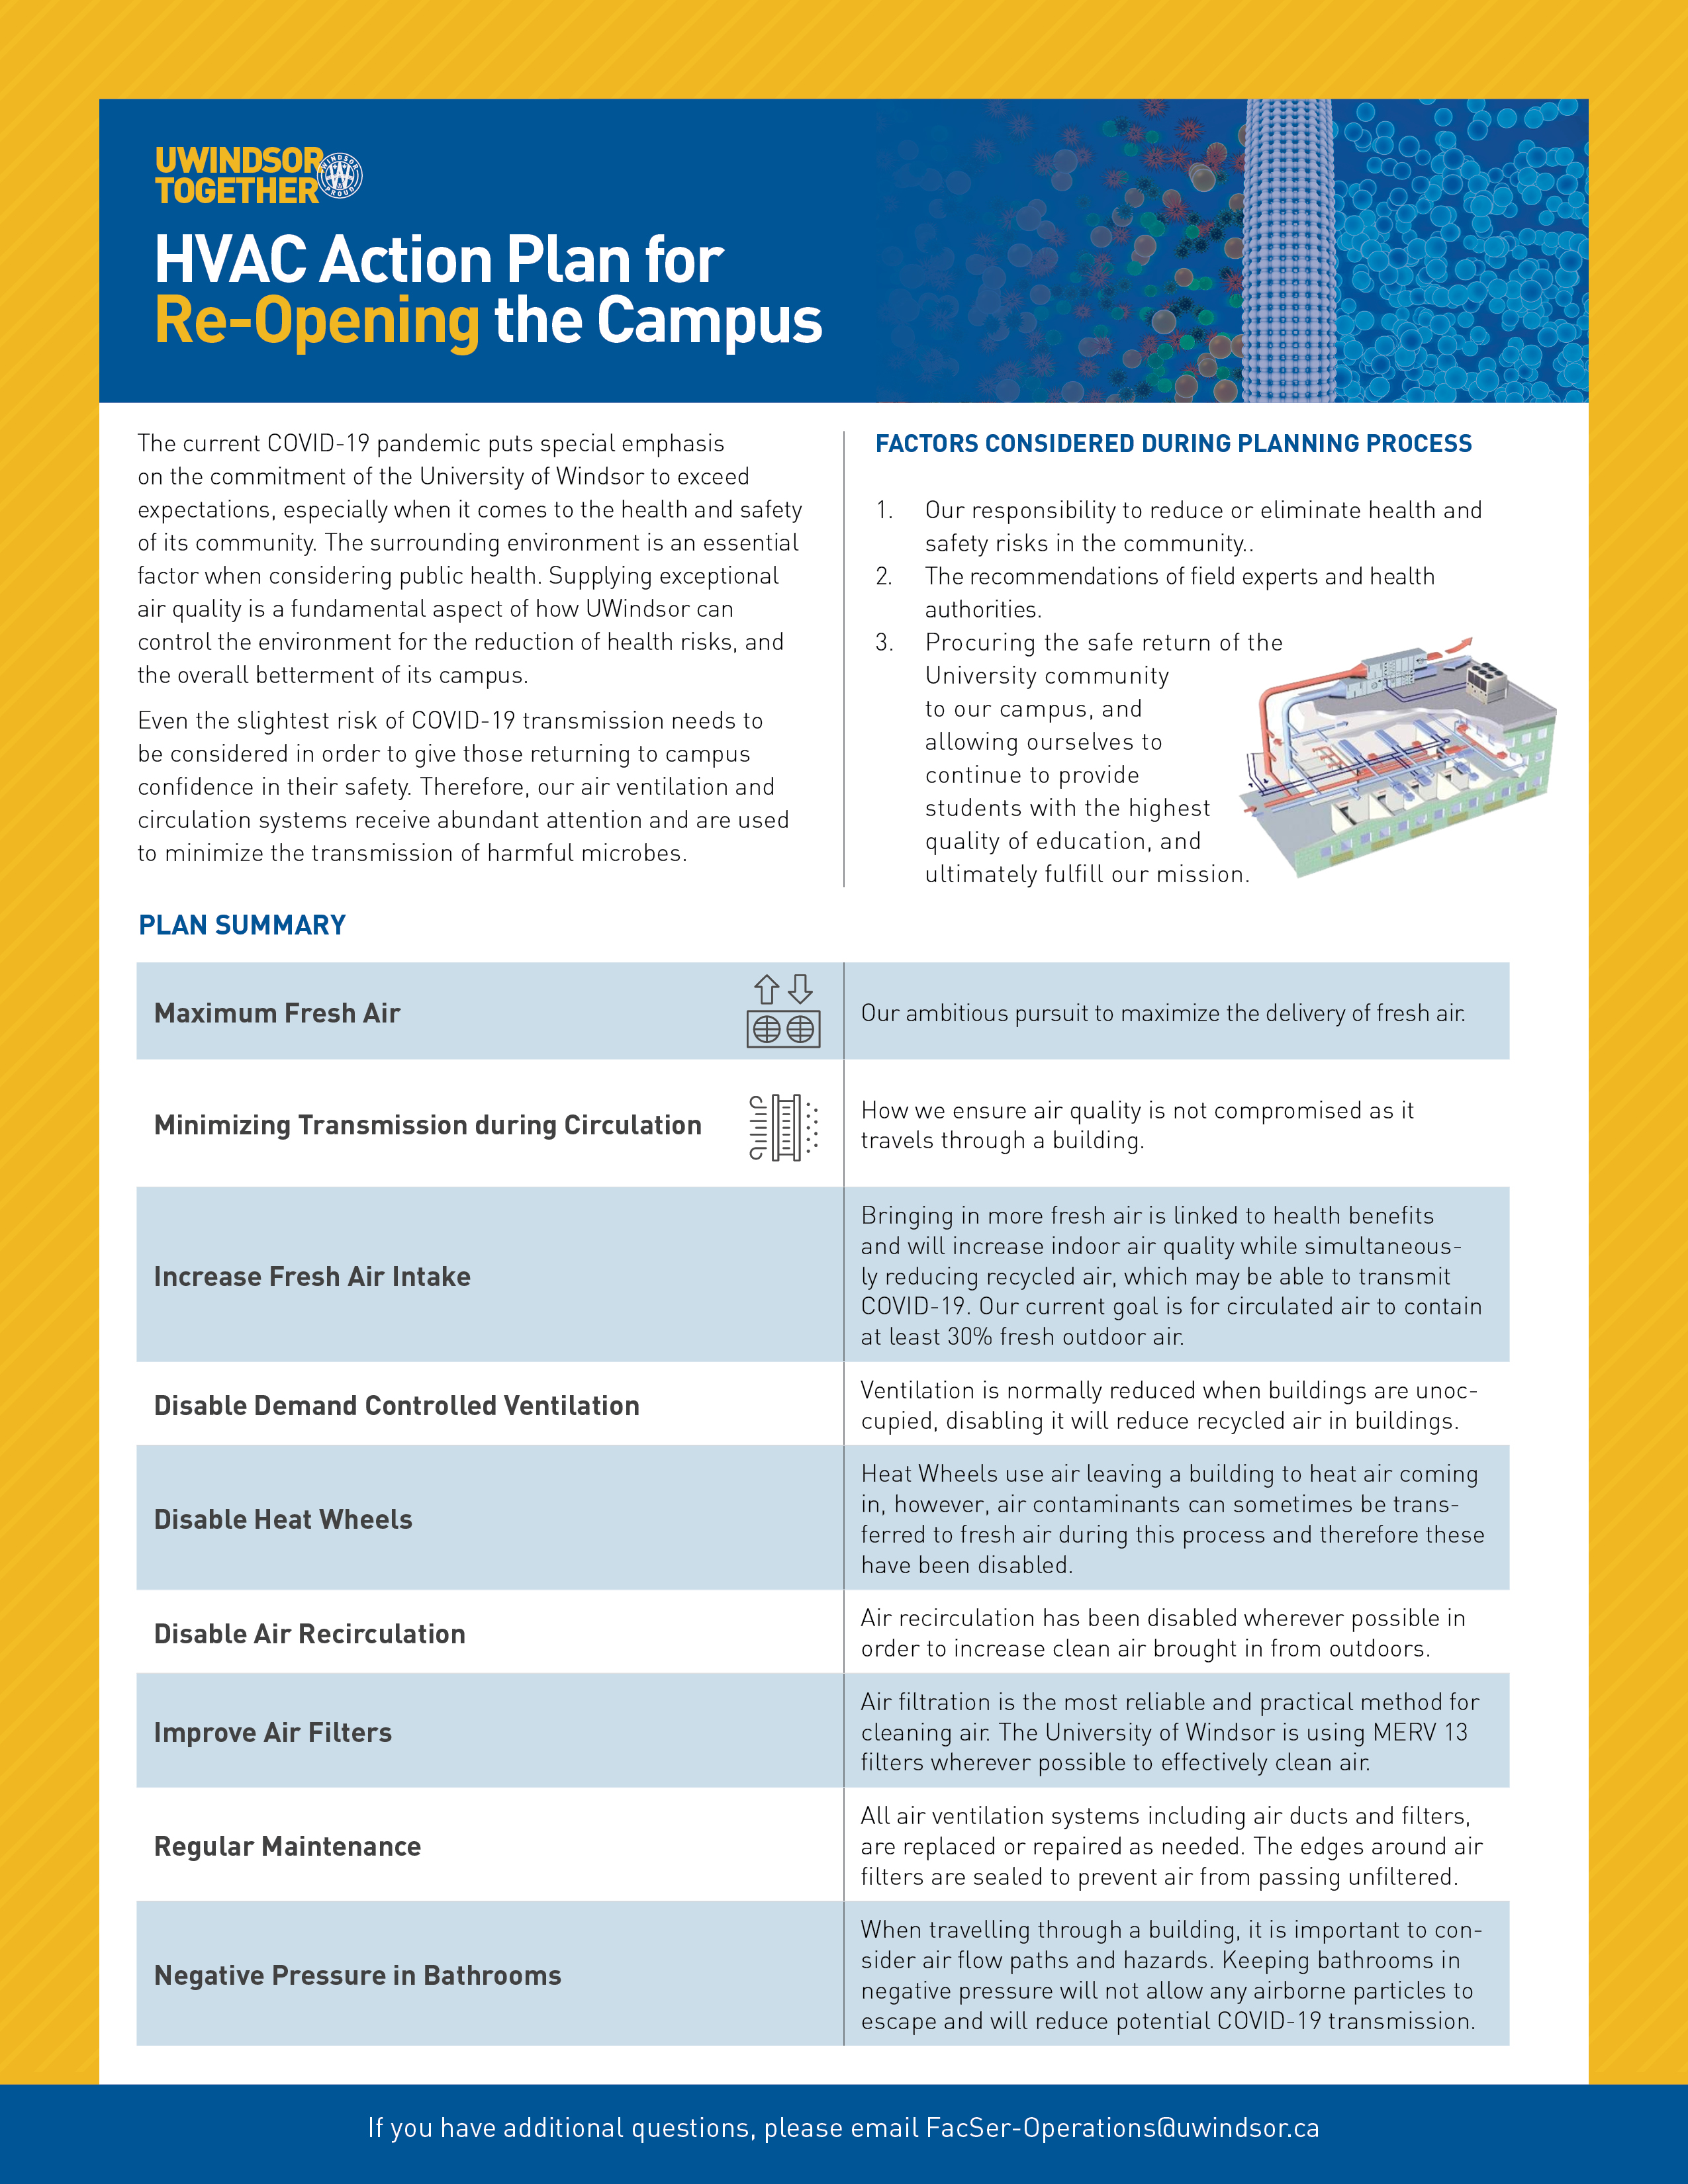 HVAC Action Plan for Re-opening the Campus